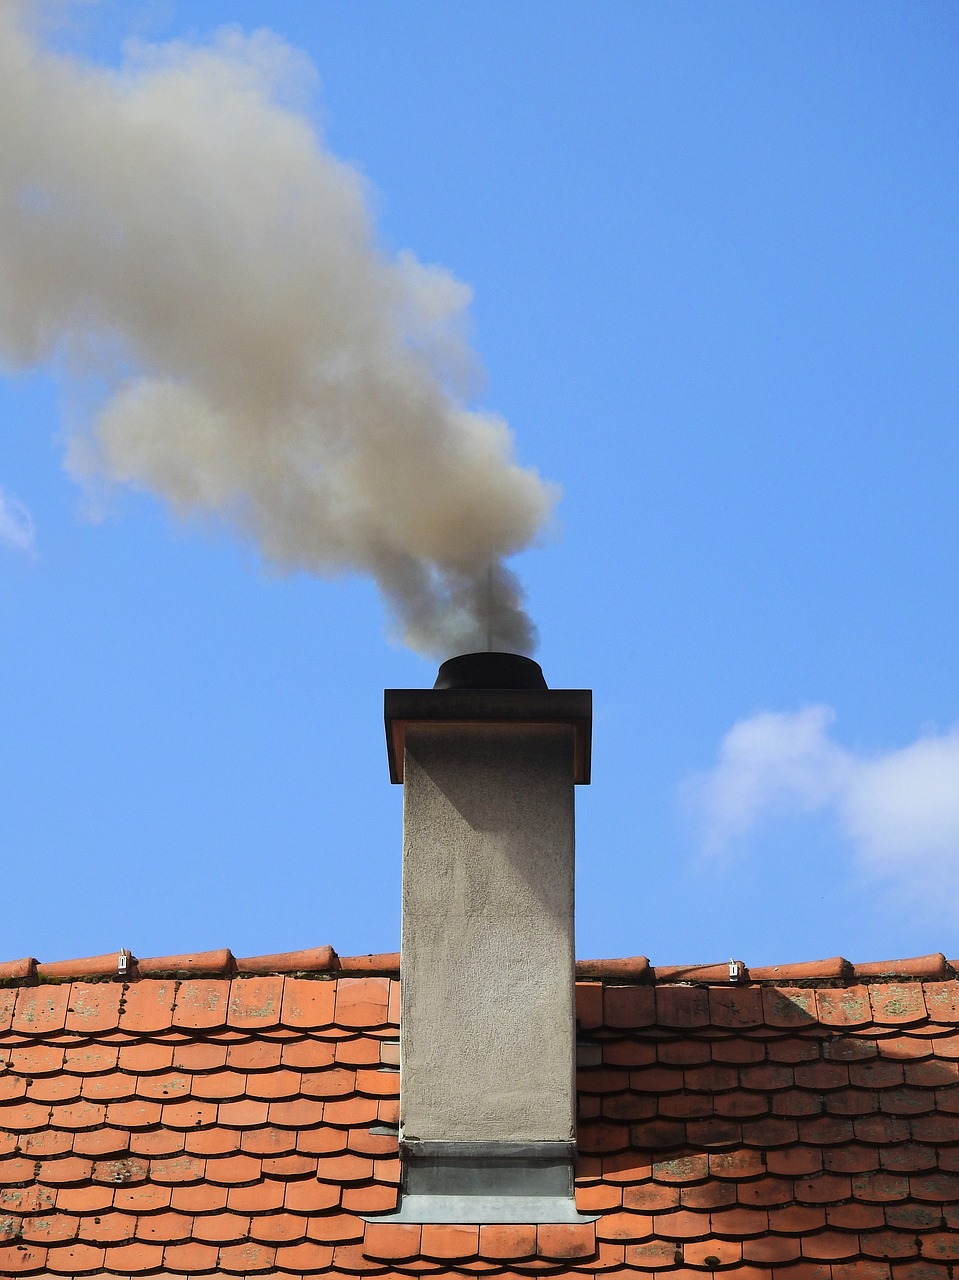 chimney,smoke,fireplace,pollution,exhaust gases,environmental protection,old,loads,roof,environment,heat,emission,free pictures, free photos, free images, royalty free, free illustrations, public domain